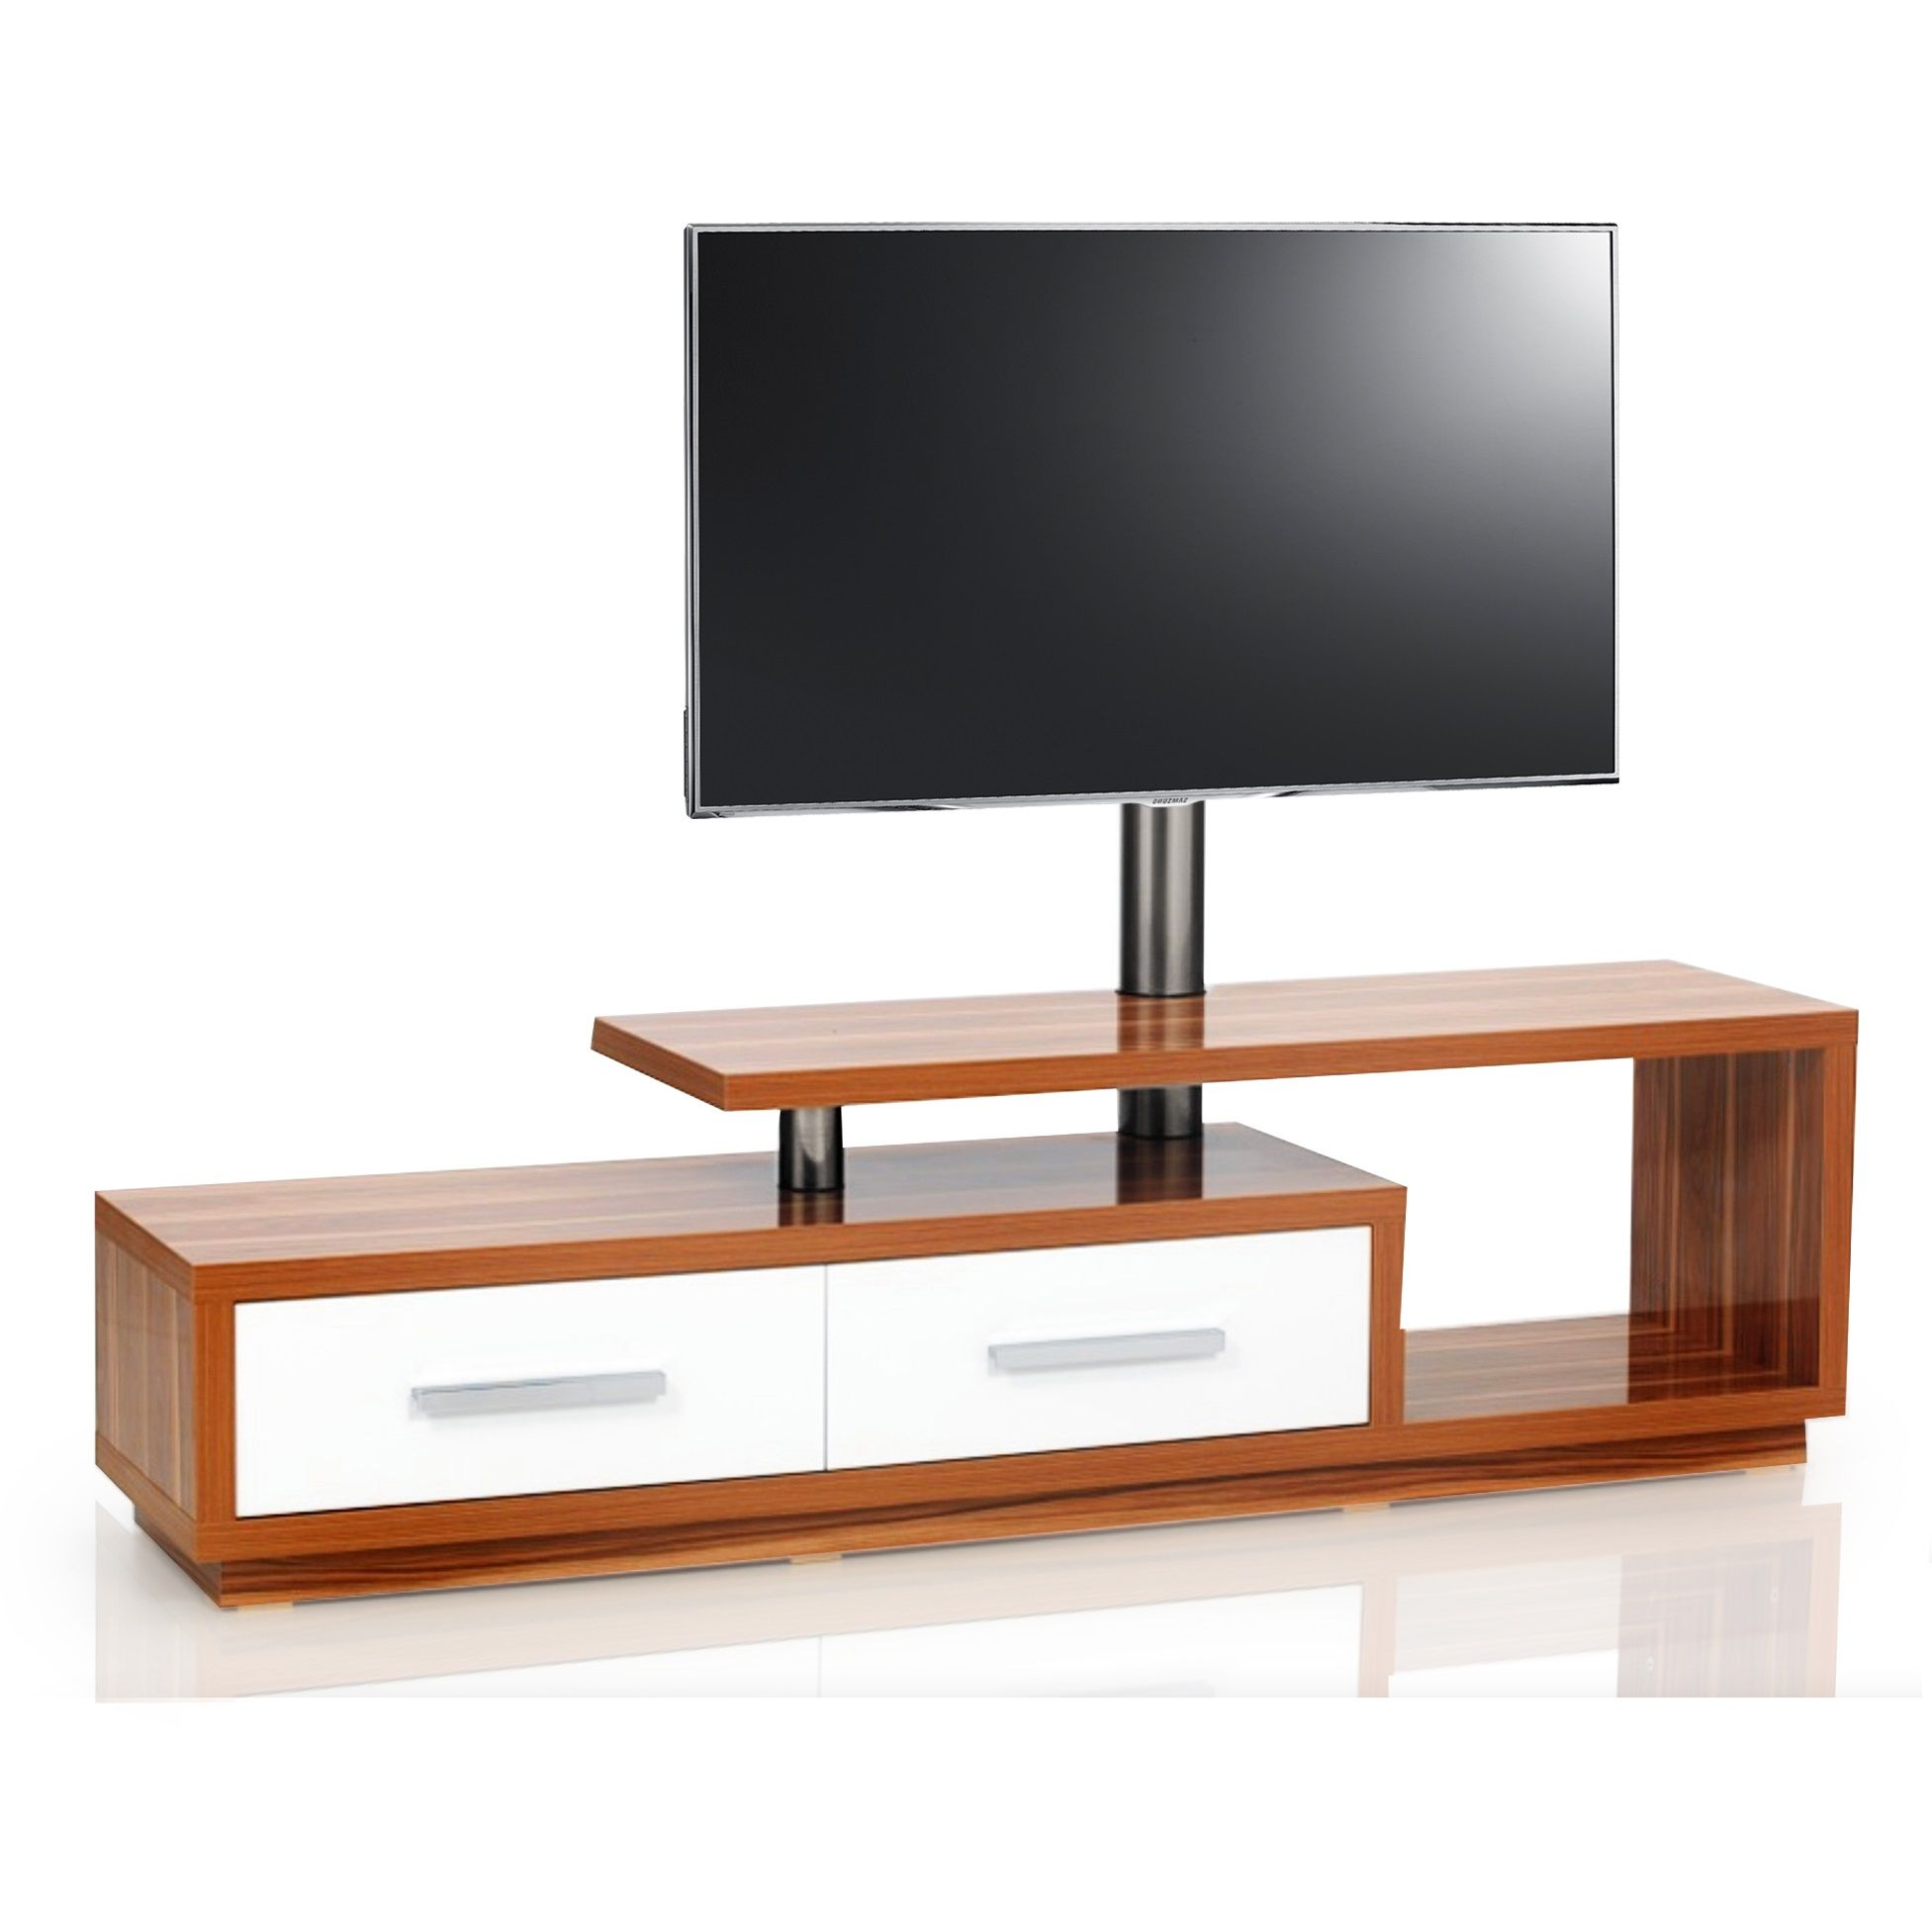 Table De Tv Plasma En Bois - Stunning Tables De Television Contemporary Joshkrajcik Us [mjhdah]http://www.maisonjoffrois.fr/wp-content/uploads/2017/08/meuble-tv-design-bois-massif-lagos-135-cm-1.jpg